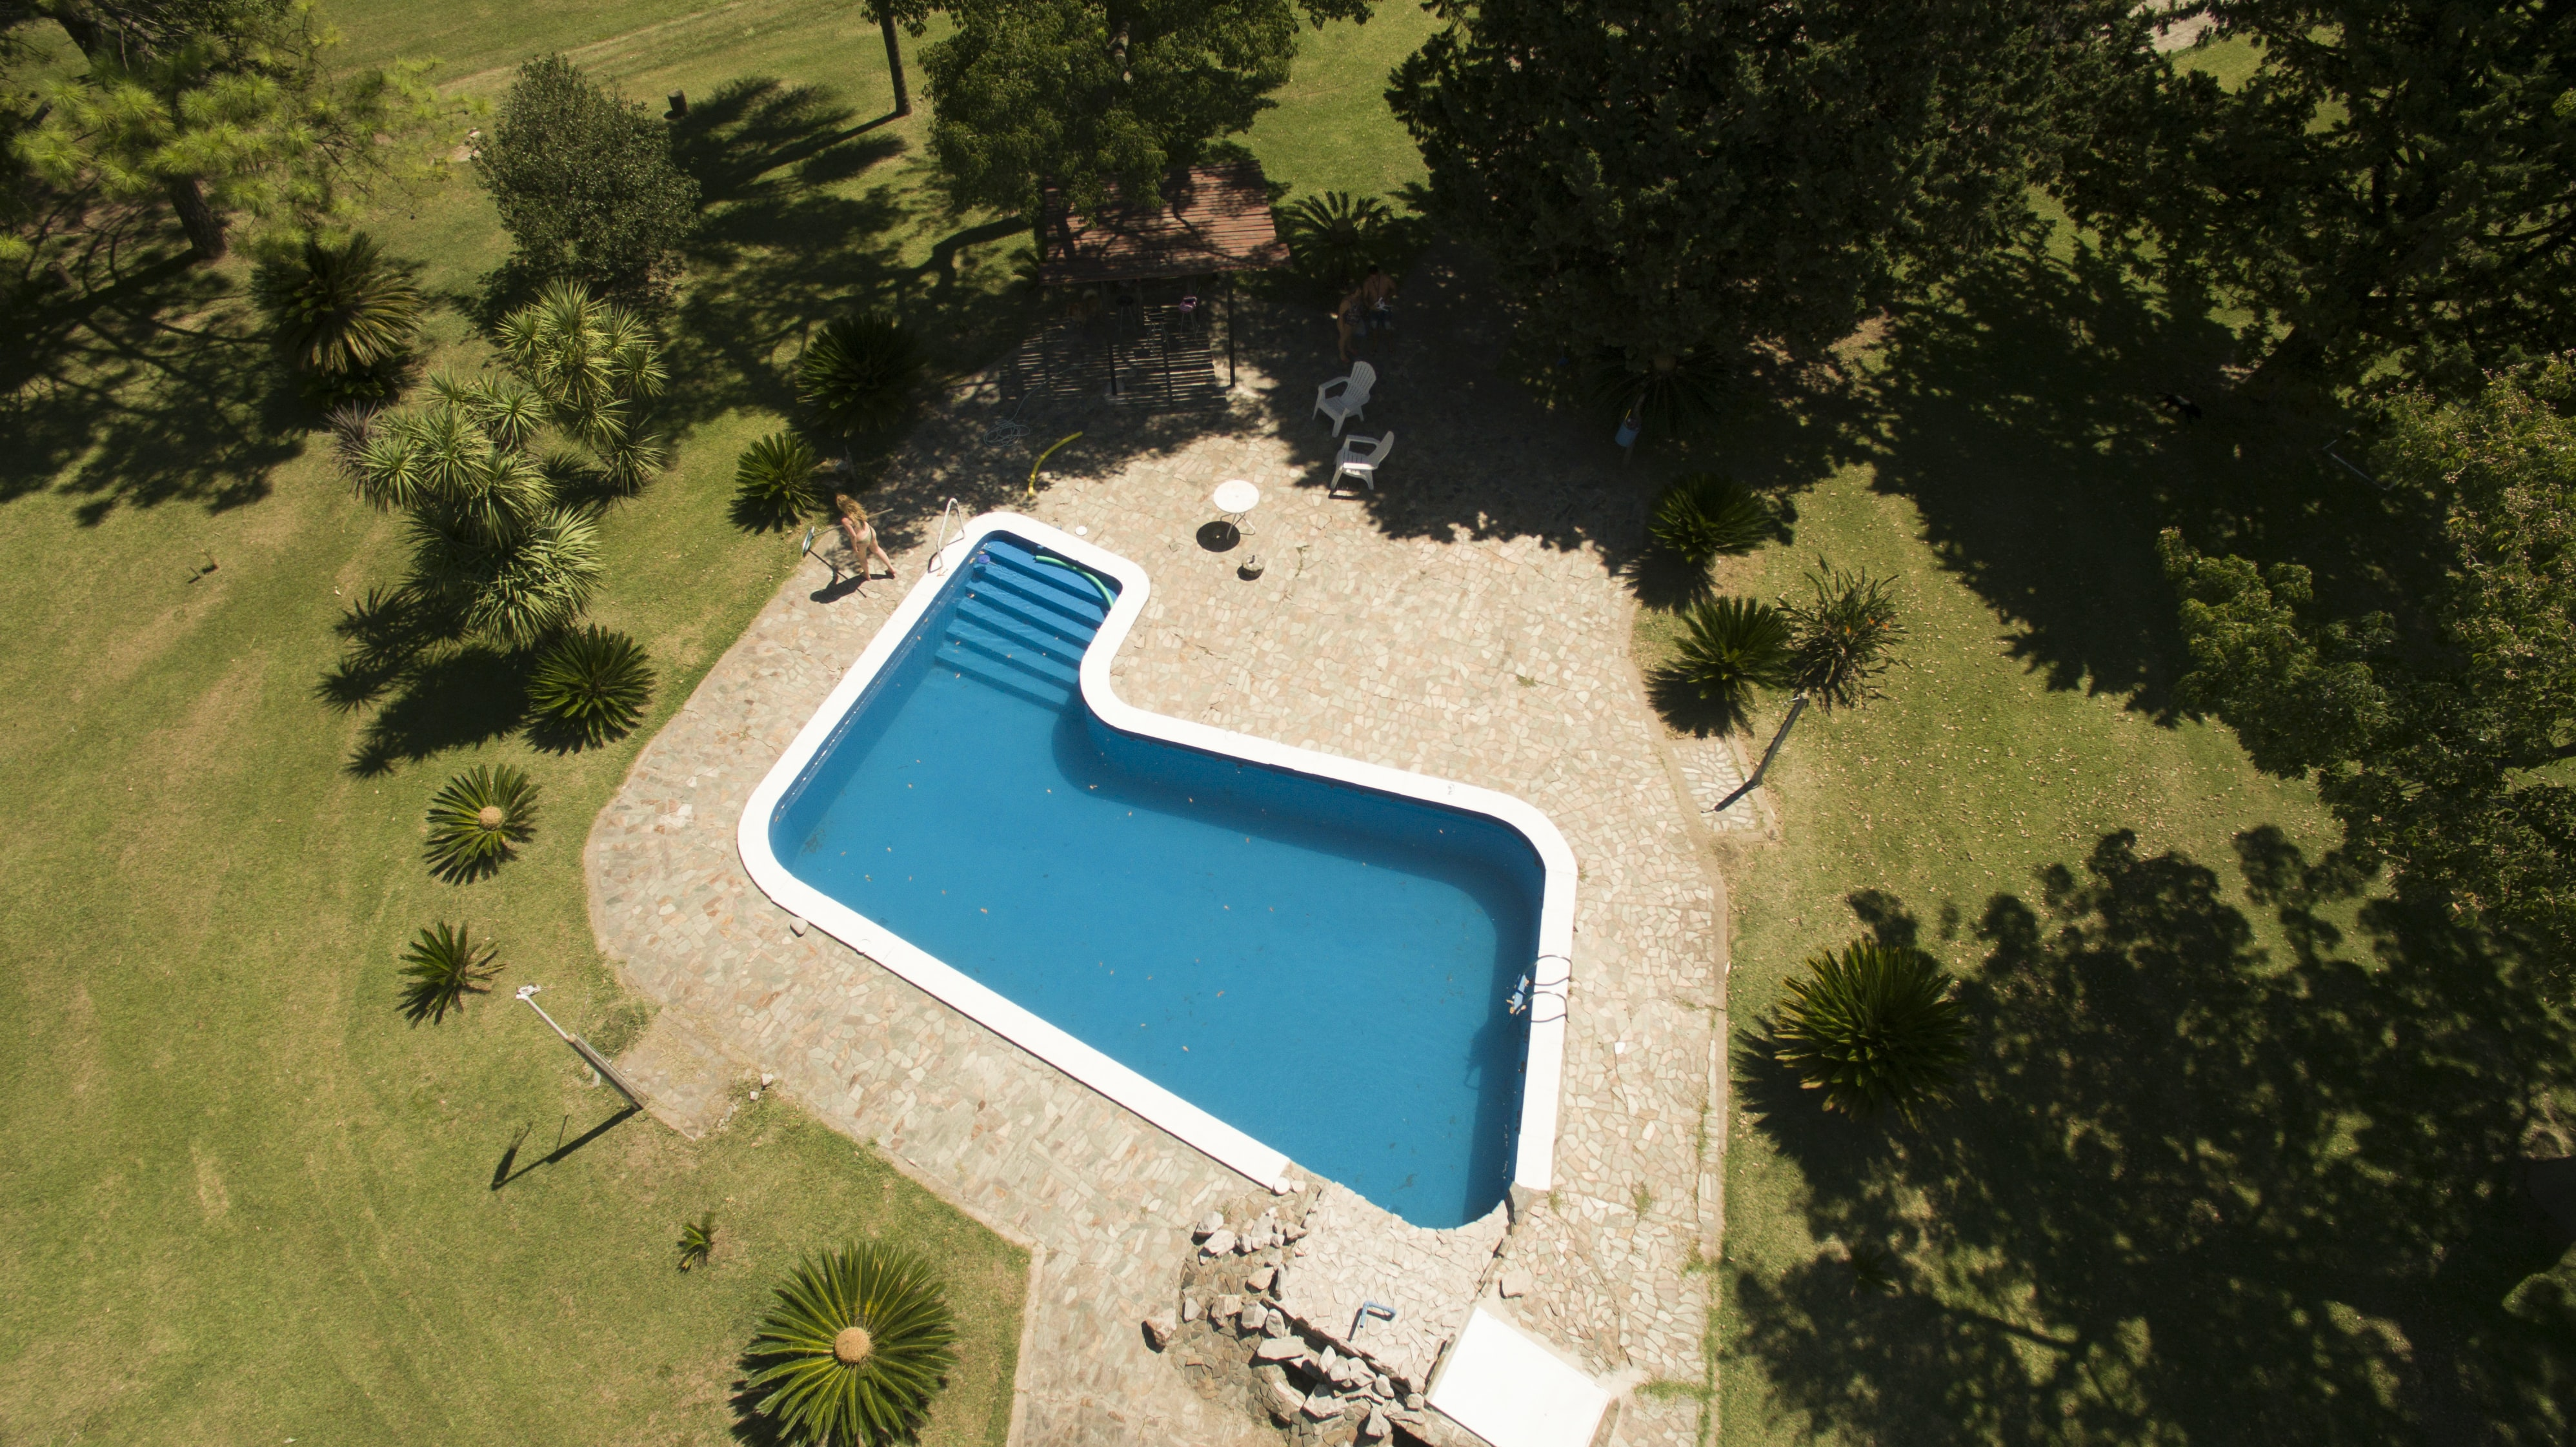 aerial photo of swimming pool with green leafed trees